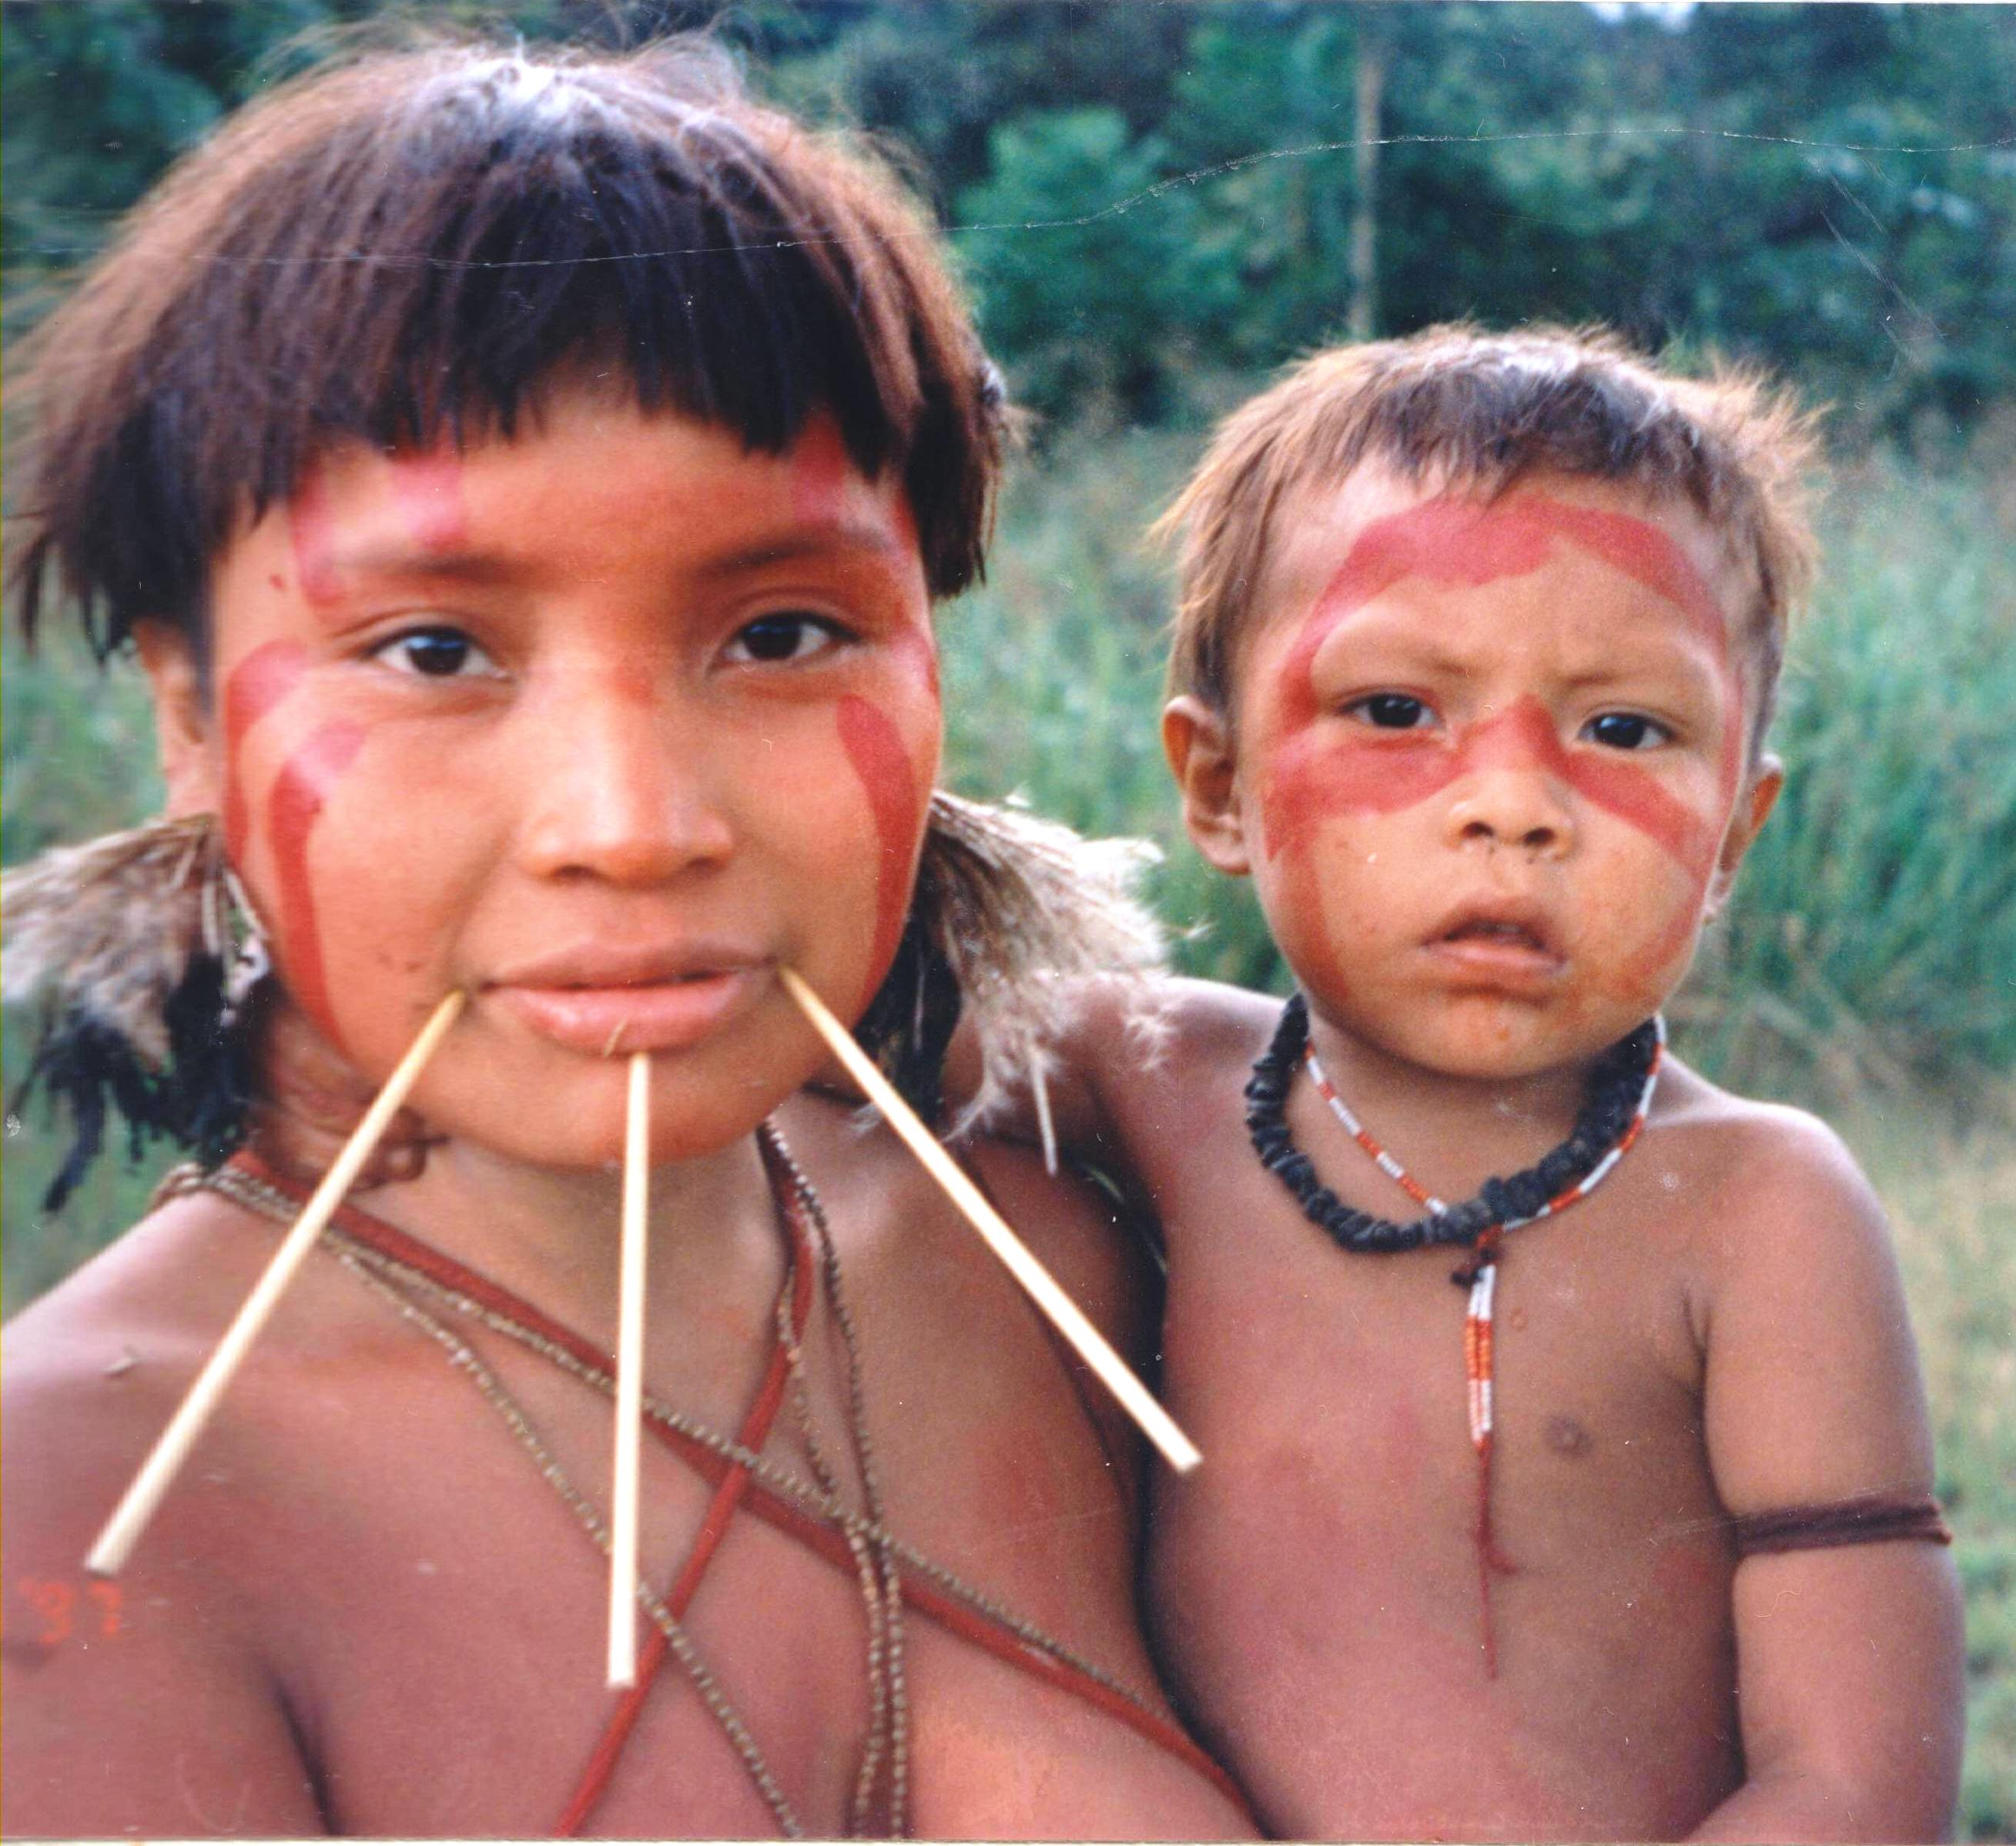 an analysis of the yanomami culture in the work of napoleon chagnon Tierney's work suggests that chagnon and his contemporaries did not act in the best interests of the yanamamo people critics of tierney, such as the response from venezuela, science 9 february 2001 accuse tierney of half truths and defend chagnon and his work.